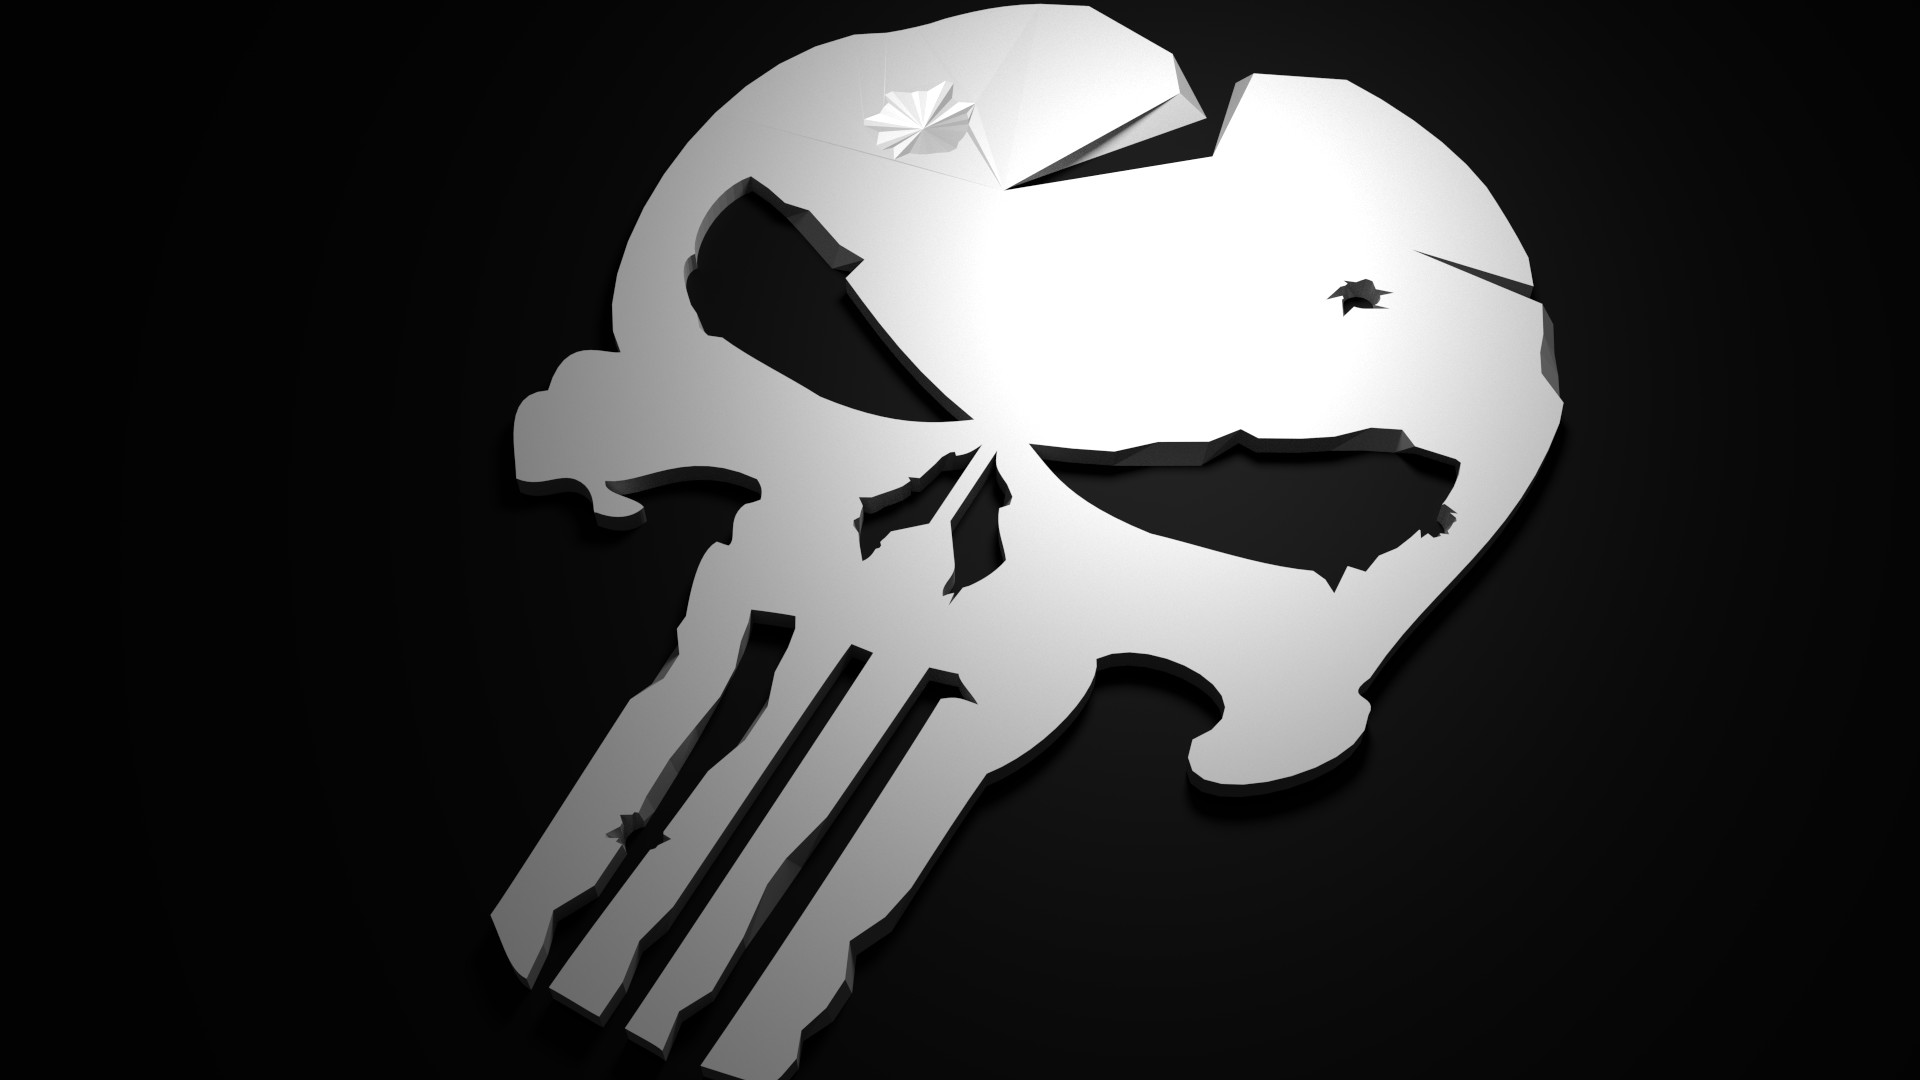 Punisher hd wallpaper 73 images 1920x1080 the punisher comic wallpapers wallpapersin4k voltagebd Images